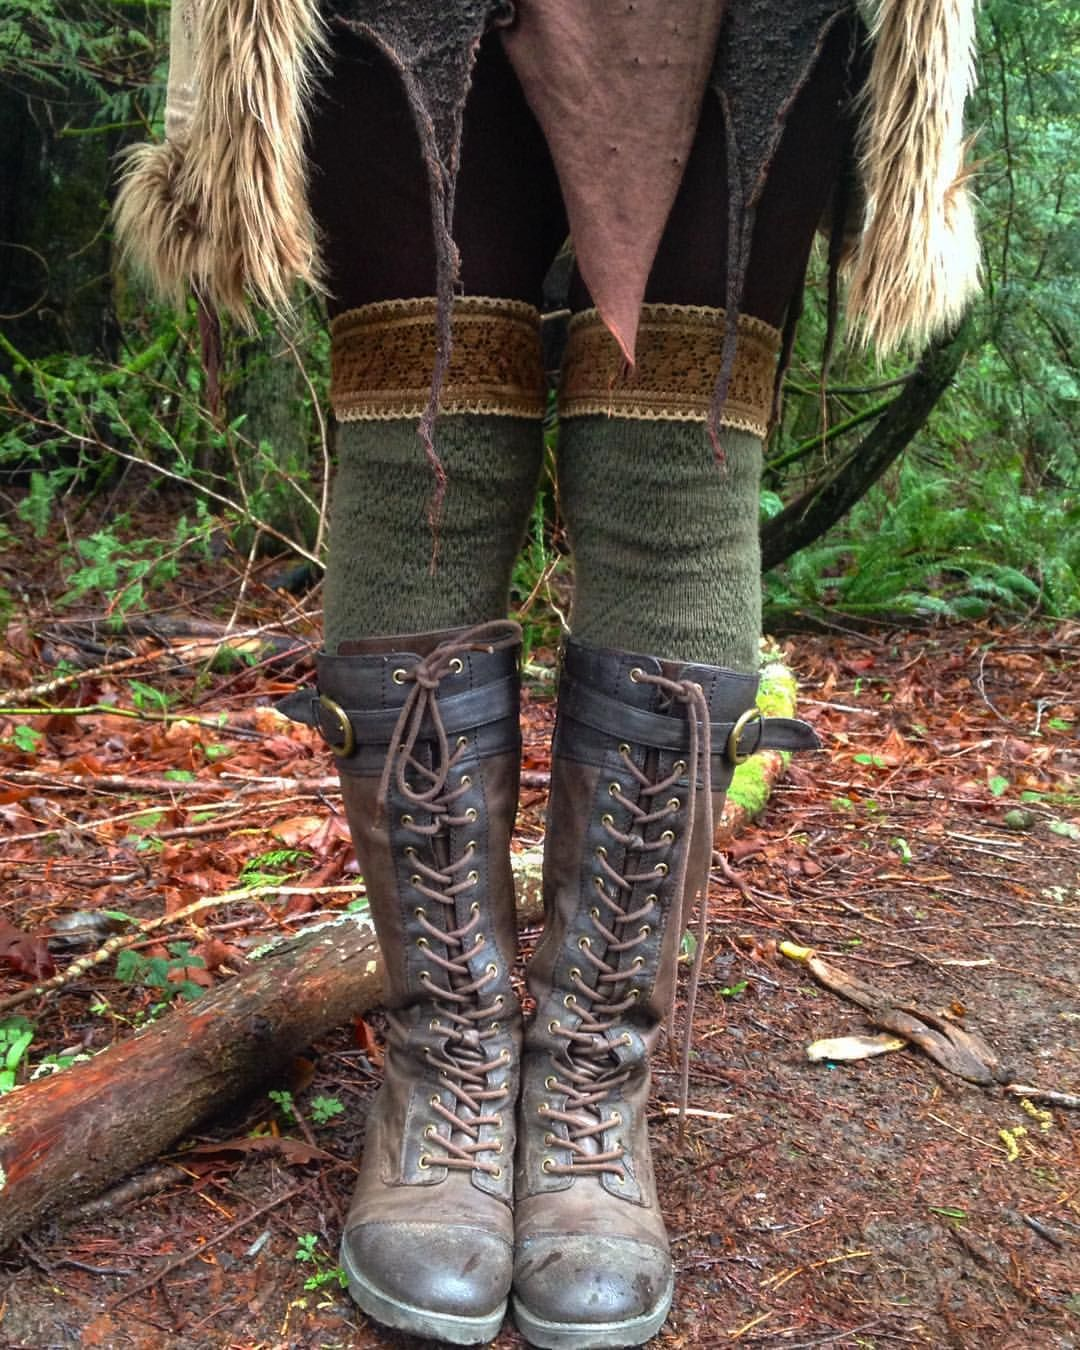 elfofthewoodlandrealm: I really don't know what I'm going to do when the weather gets warmer and crazy layers + cute socks ceases to be practical….it's always such a bittersweet change! ☀️ The boyfriend gifted me these particular socks. They have a trim that was sewn on and naturally dyed by him…and they are my very favorite pair that I own